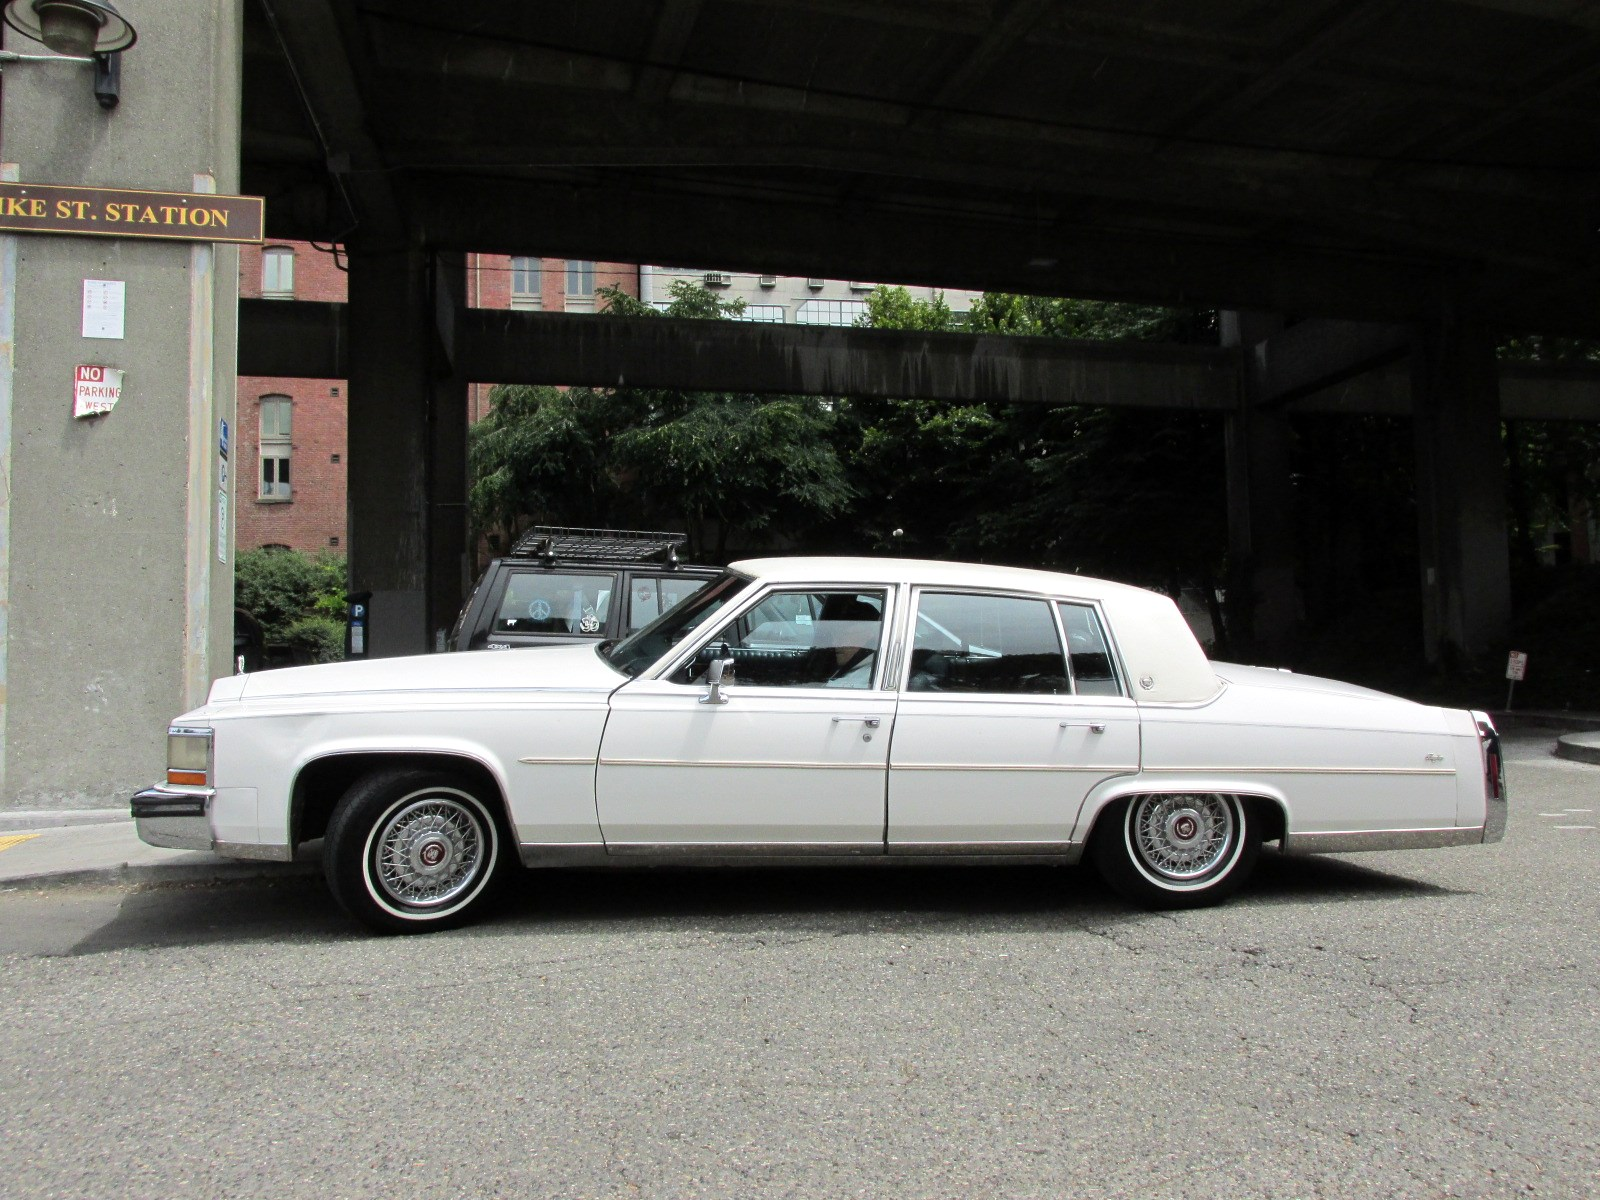 Seattle's Classics: 1982 Cadillac Sedan DeVille